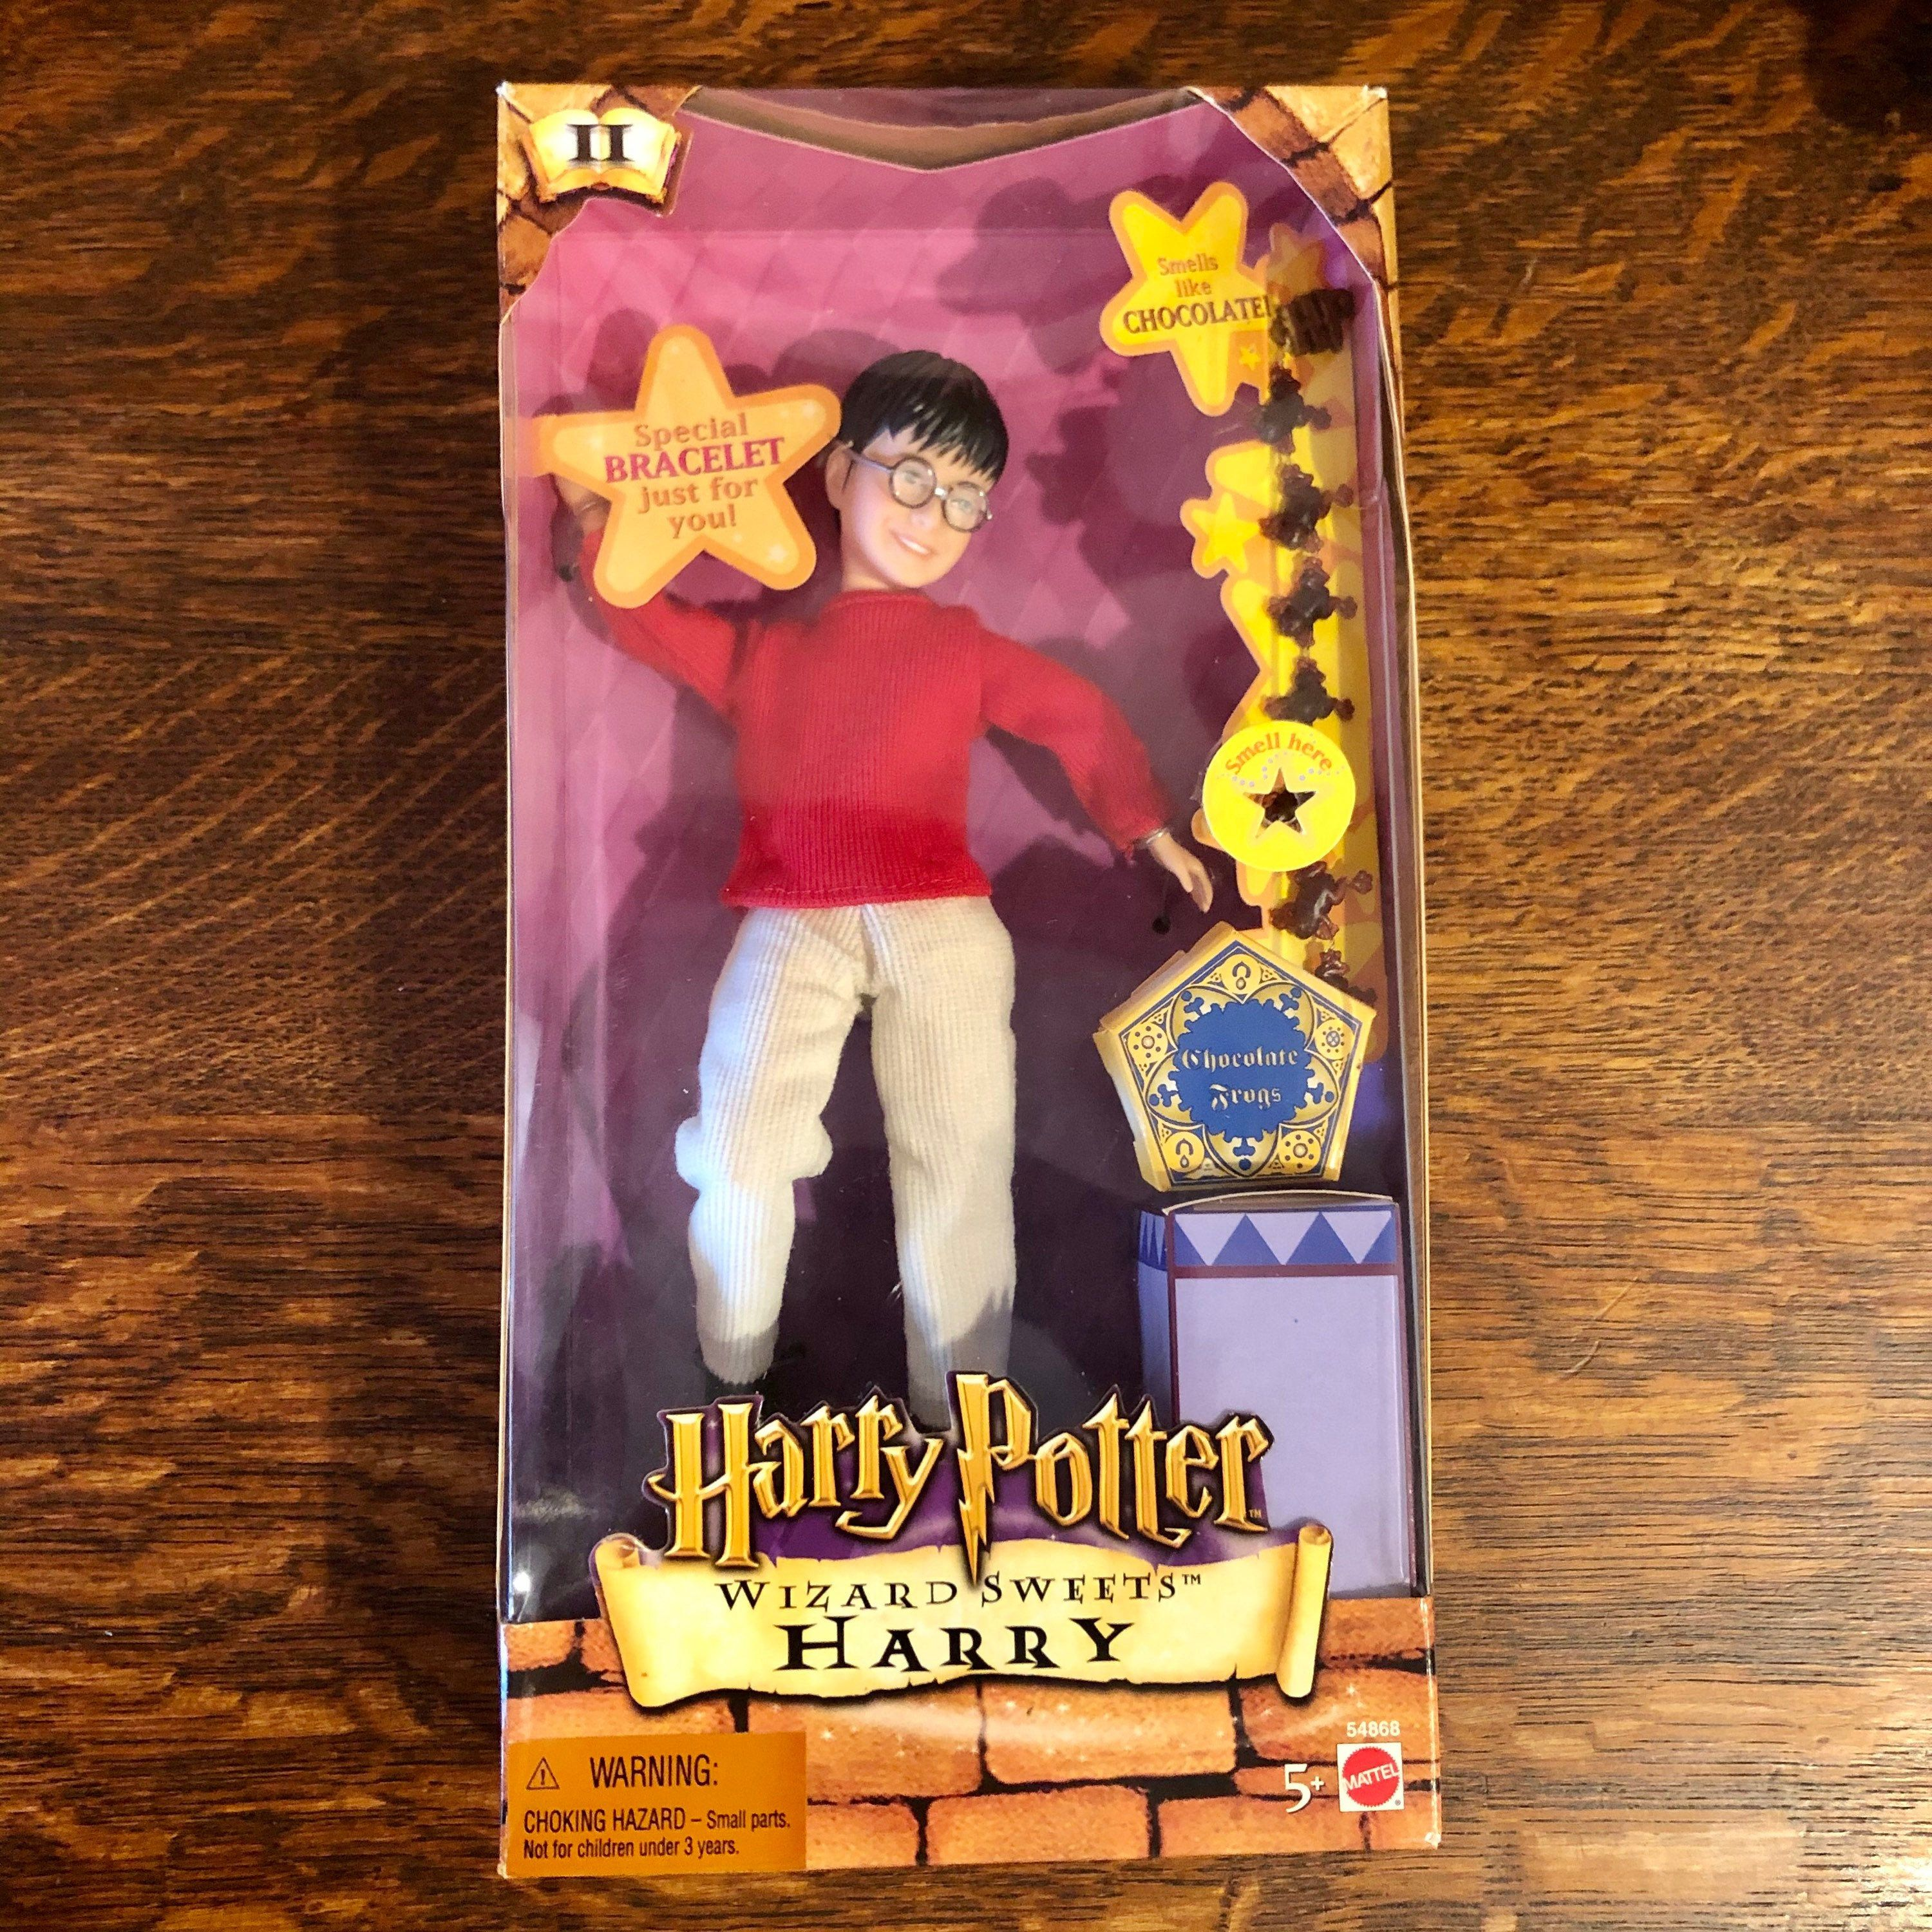 Harry Potter Doll Wizards Sweets Action Figure Chocolate Frogs Etsy In 2021 Etsy Vintage Decor Harry Potter Dolls Role Playing Gifts